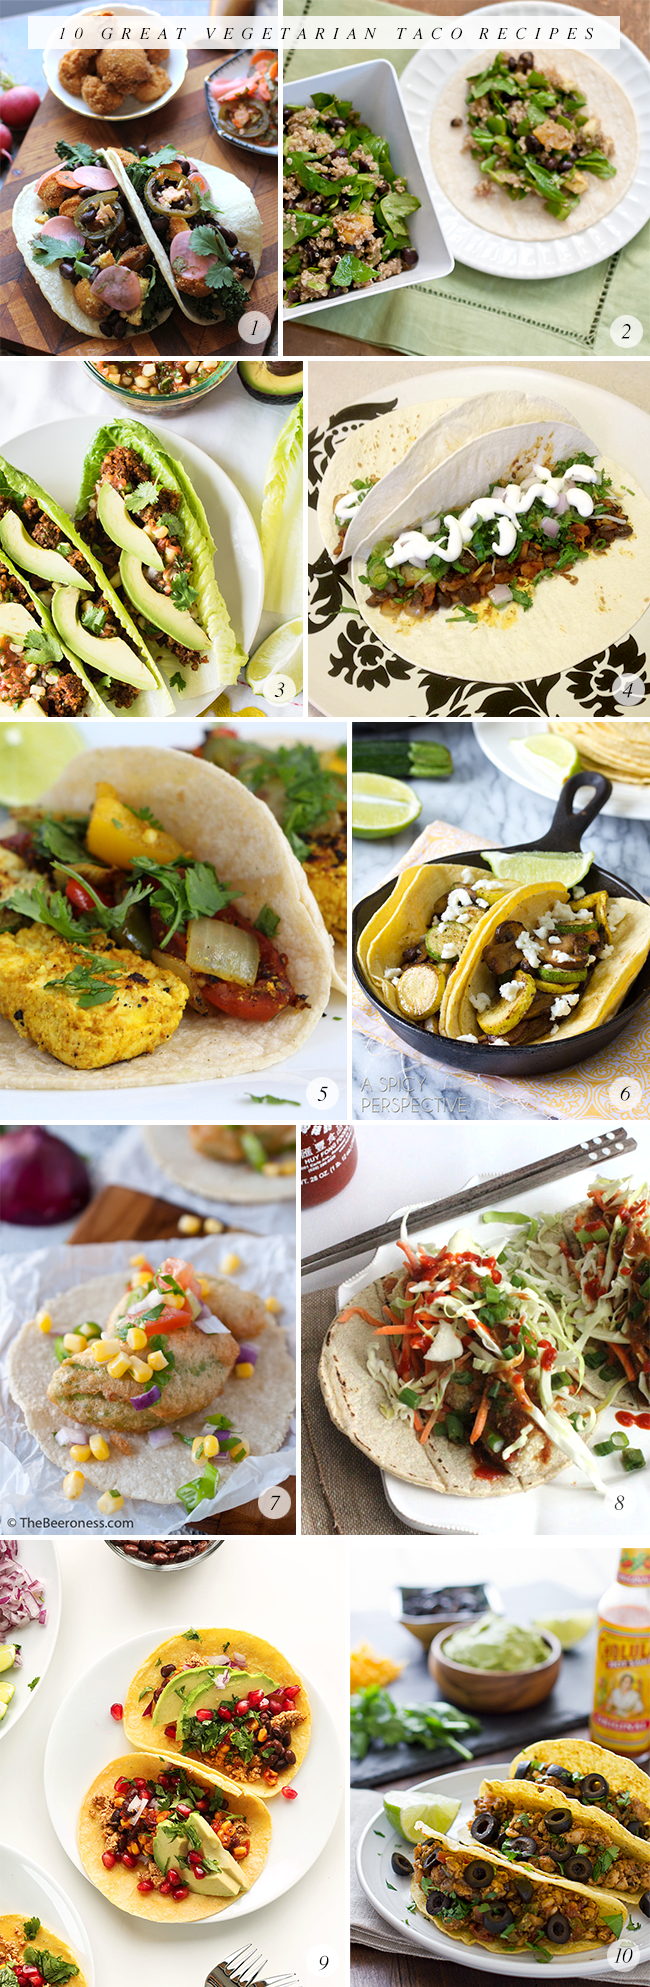 10 Great Vegetarian Taco Recipes (via Bubby and Bean)